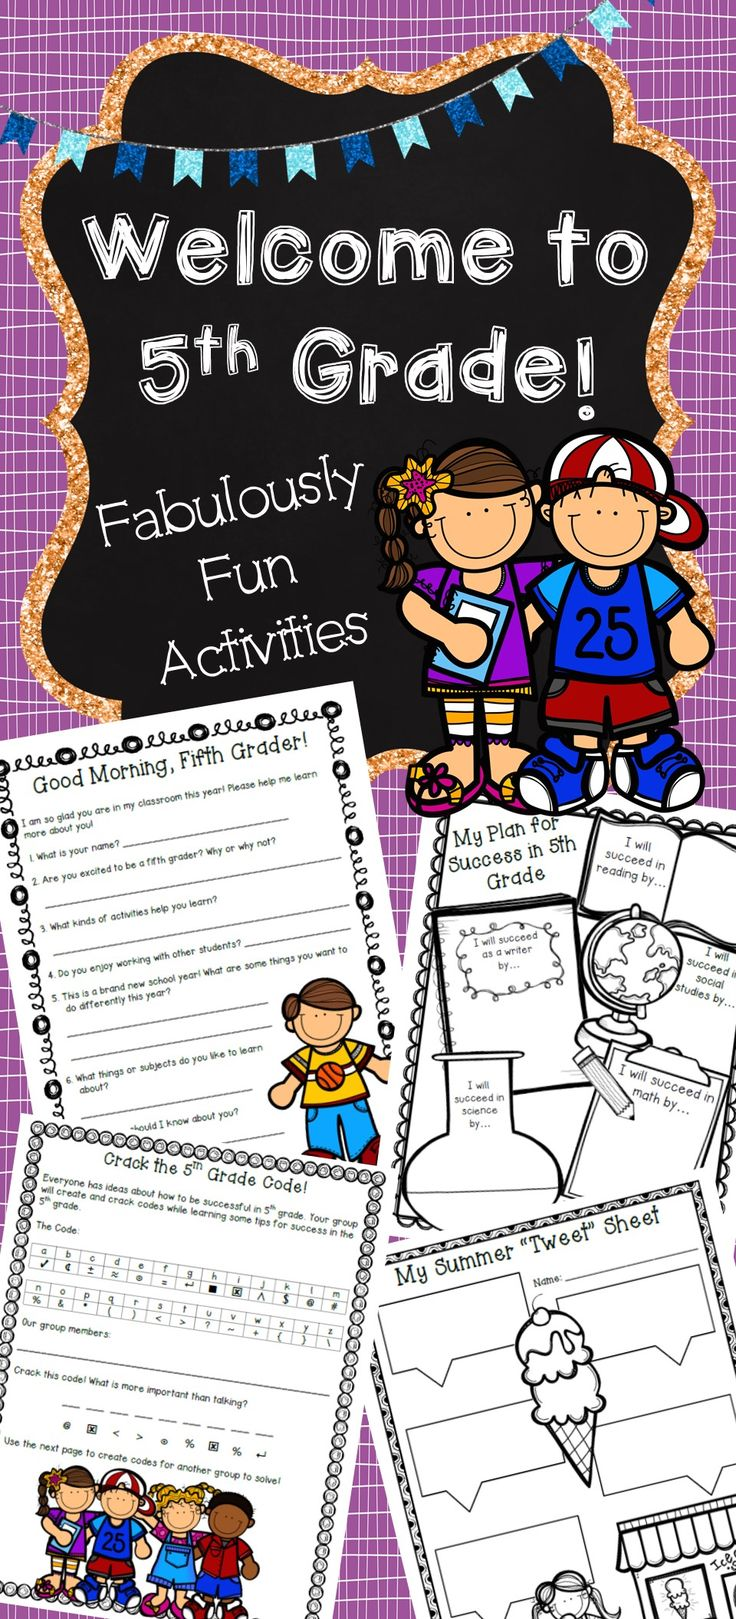 Are you looking for exciting activities to use while getting to know your new fifth graders? This packet contains individual, partner, small group, and whole-class activities. Help your students get to know you and their new classmates with the engaging activities in this packet.